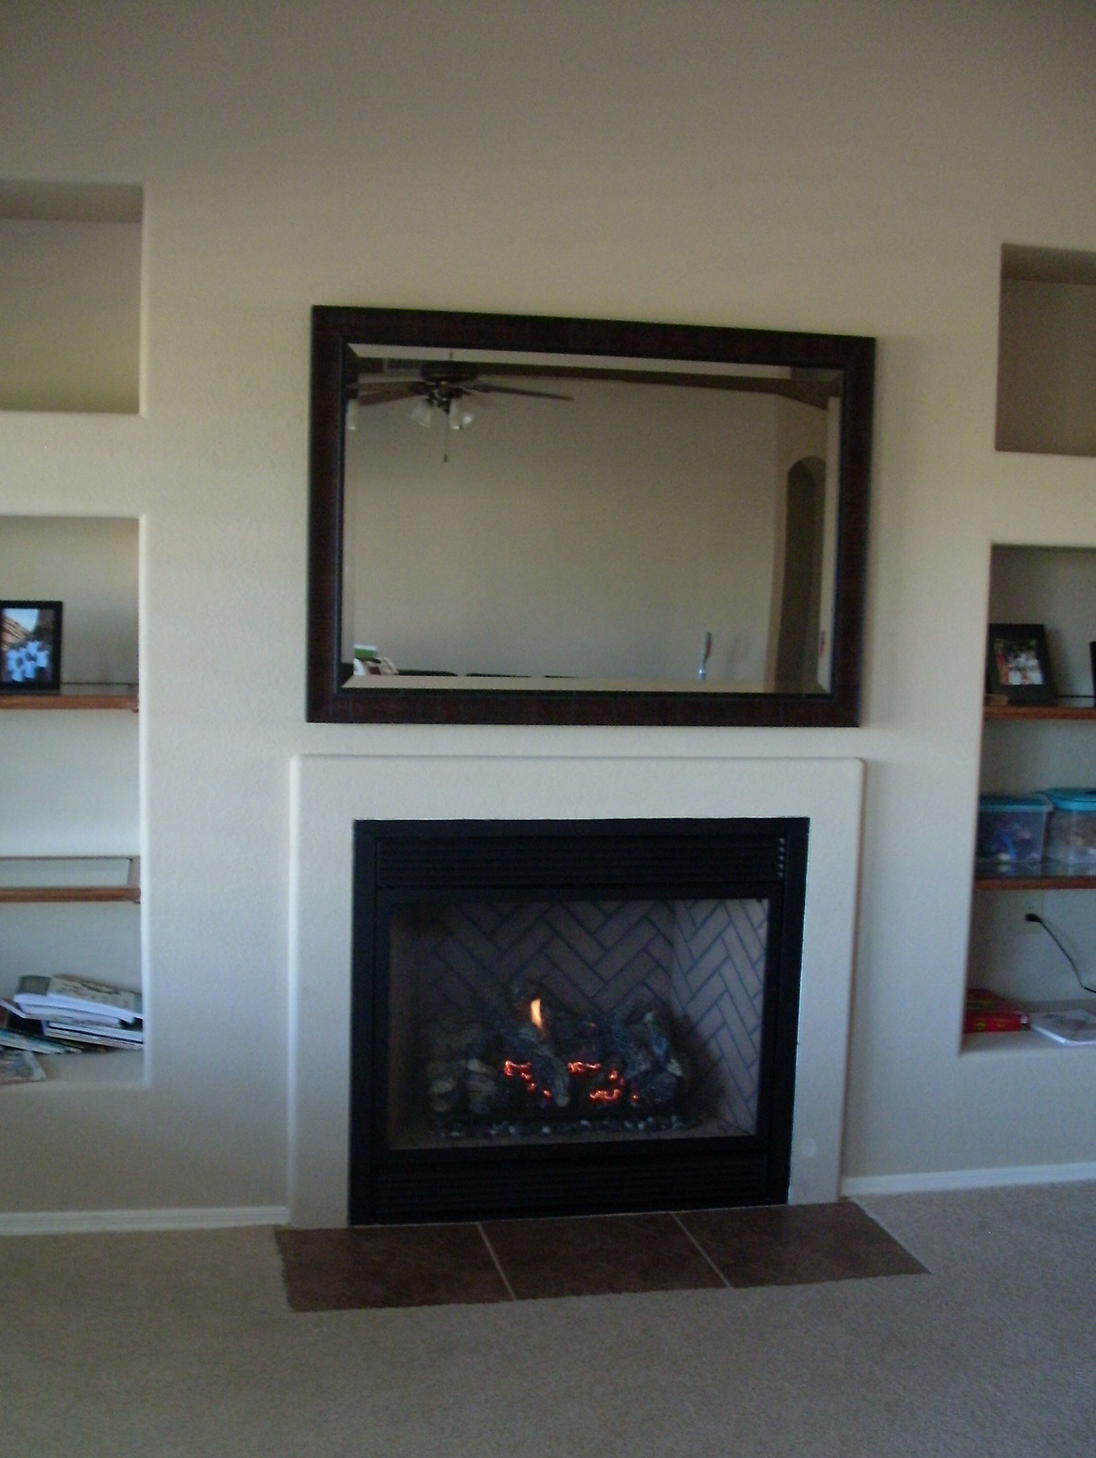 Fireplace Xtrordinair 864 with TV CoverUp above Fireplace